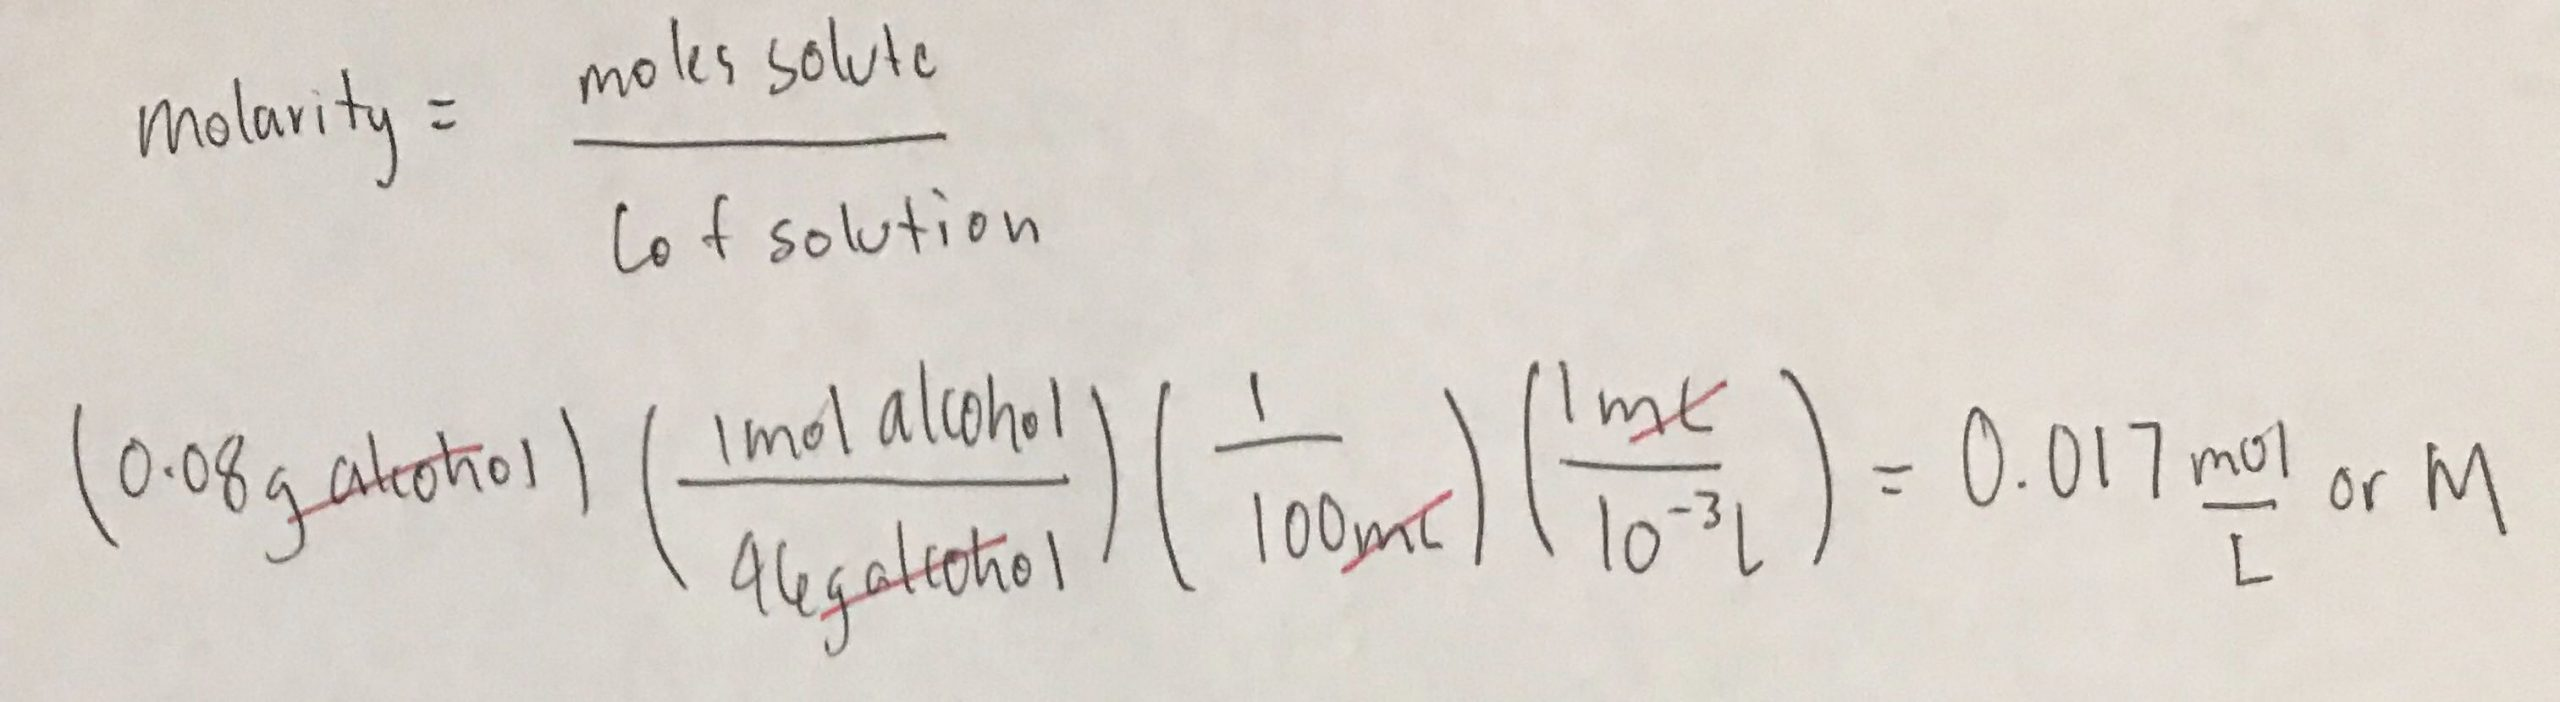 Molarity Practice Worksheet Answer